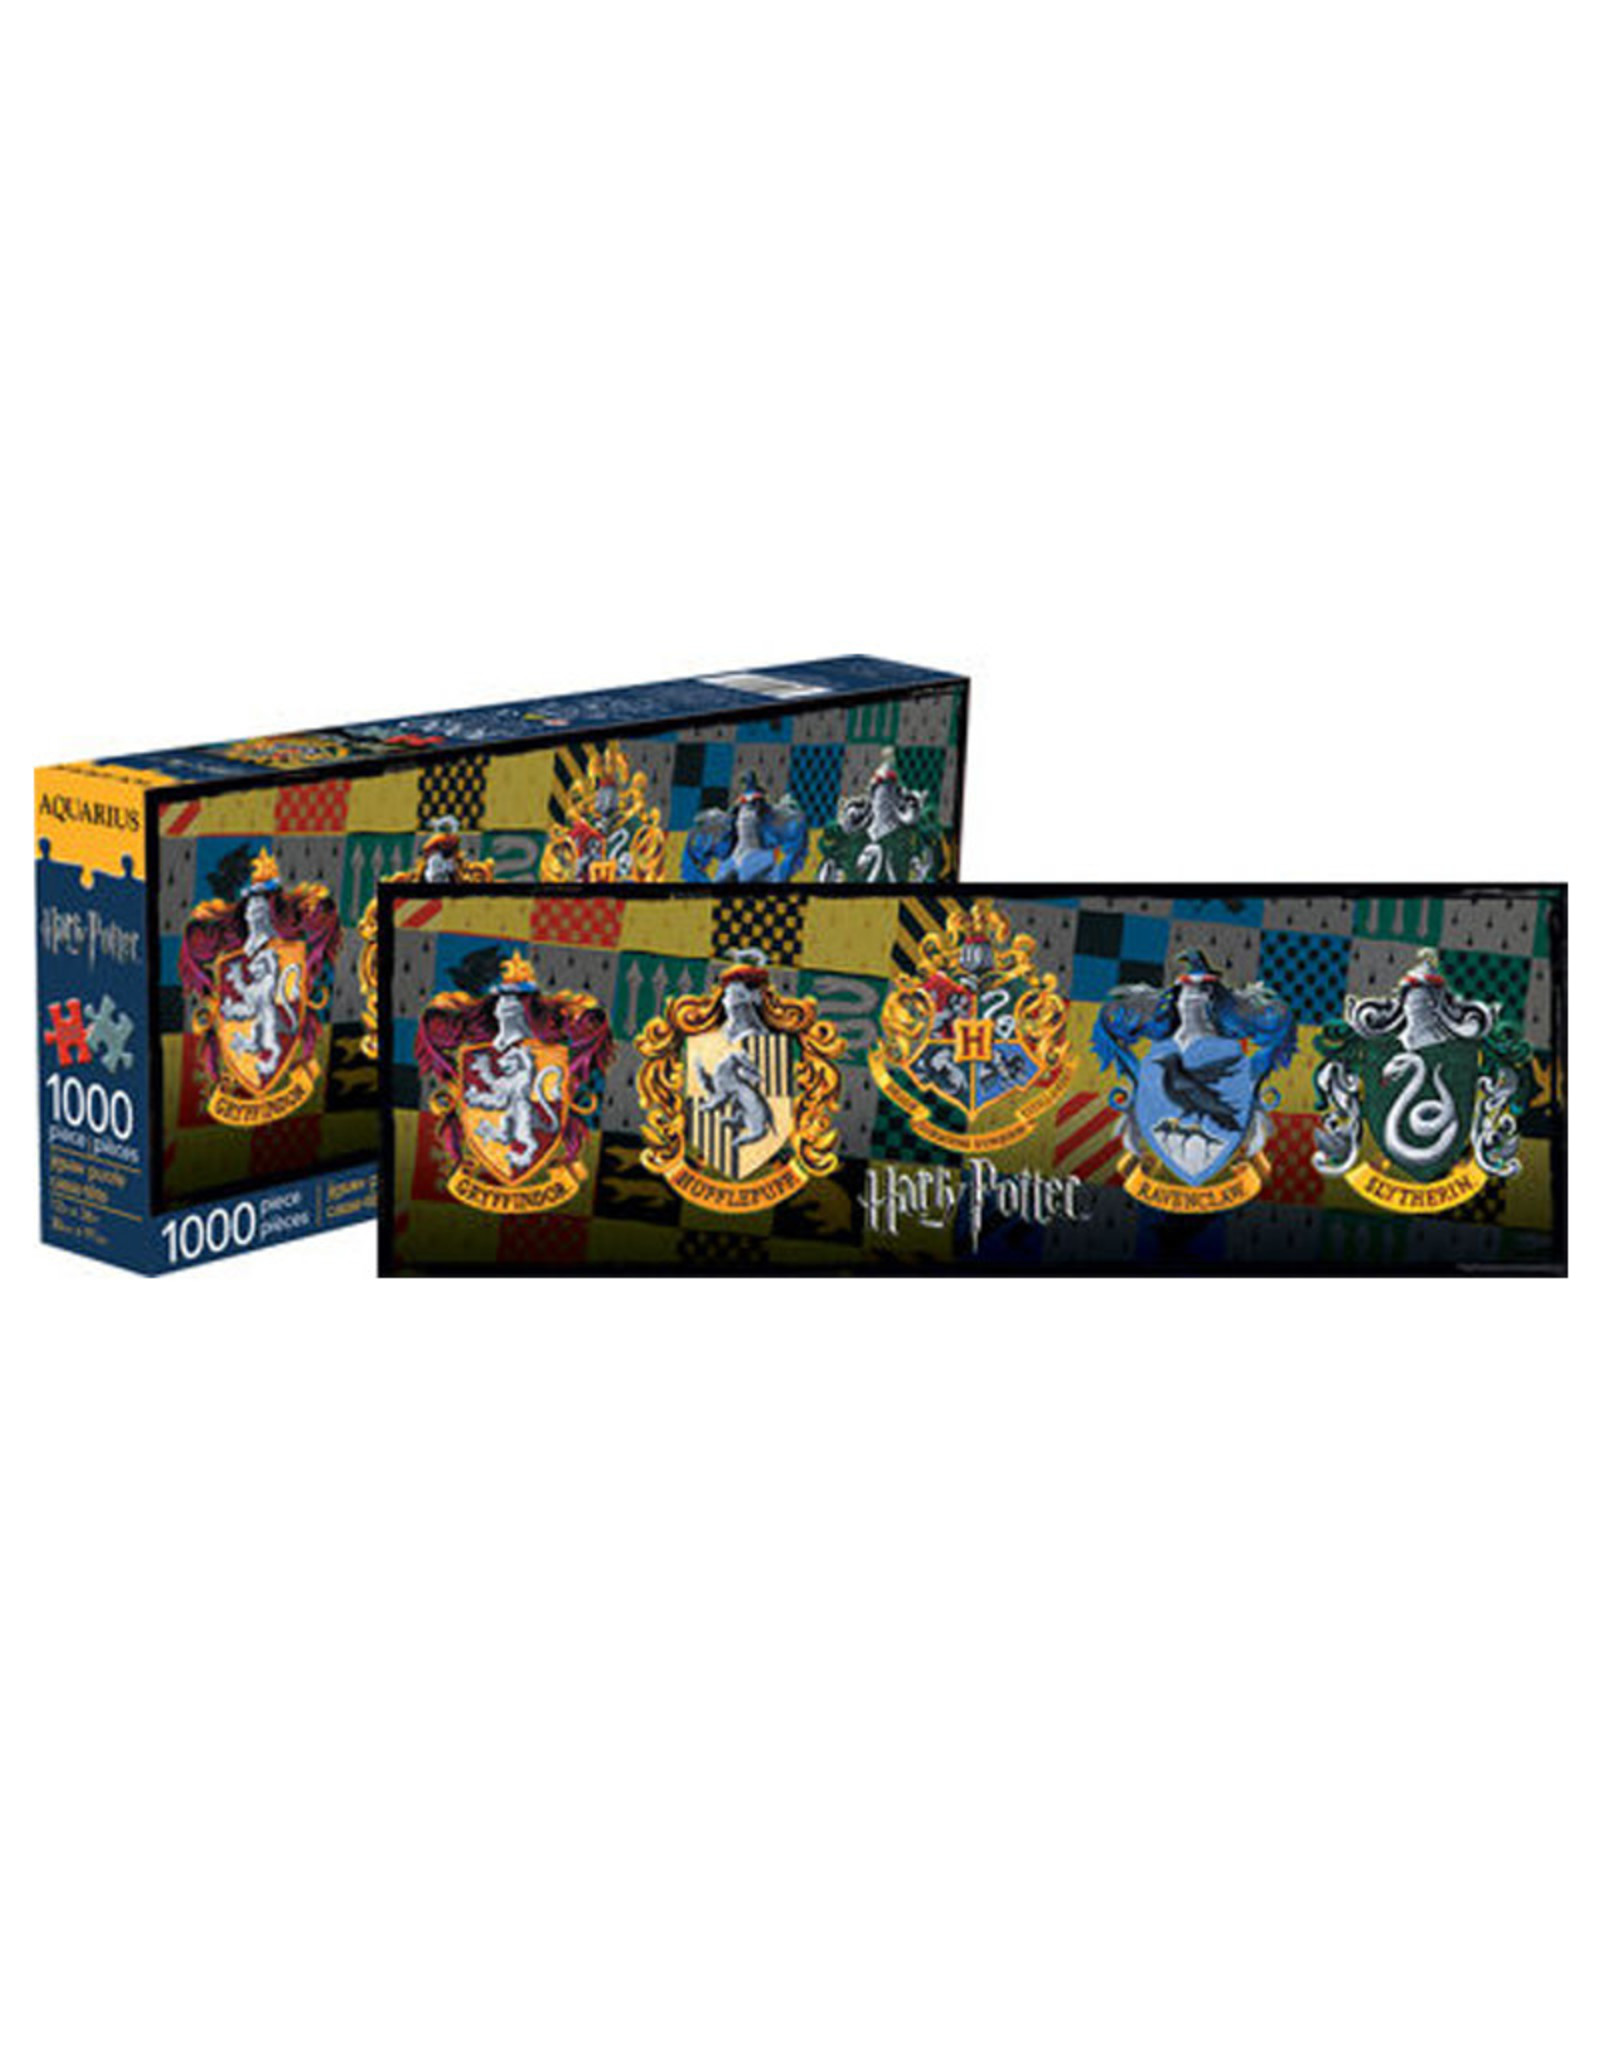 Harry Potter Harry Potter ( Puzzle 1000pcs ) Crests